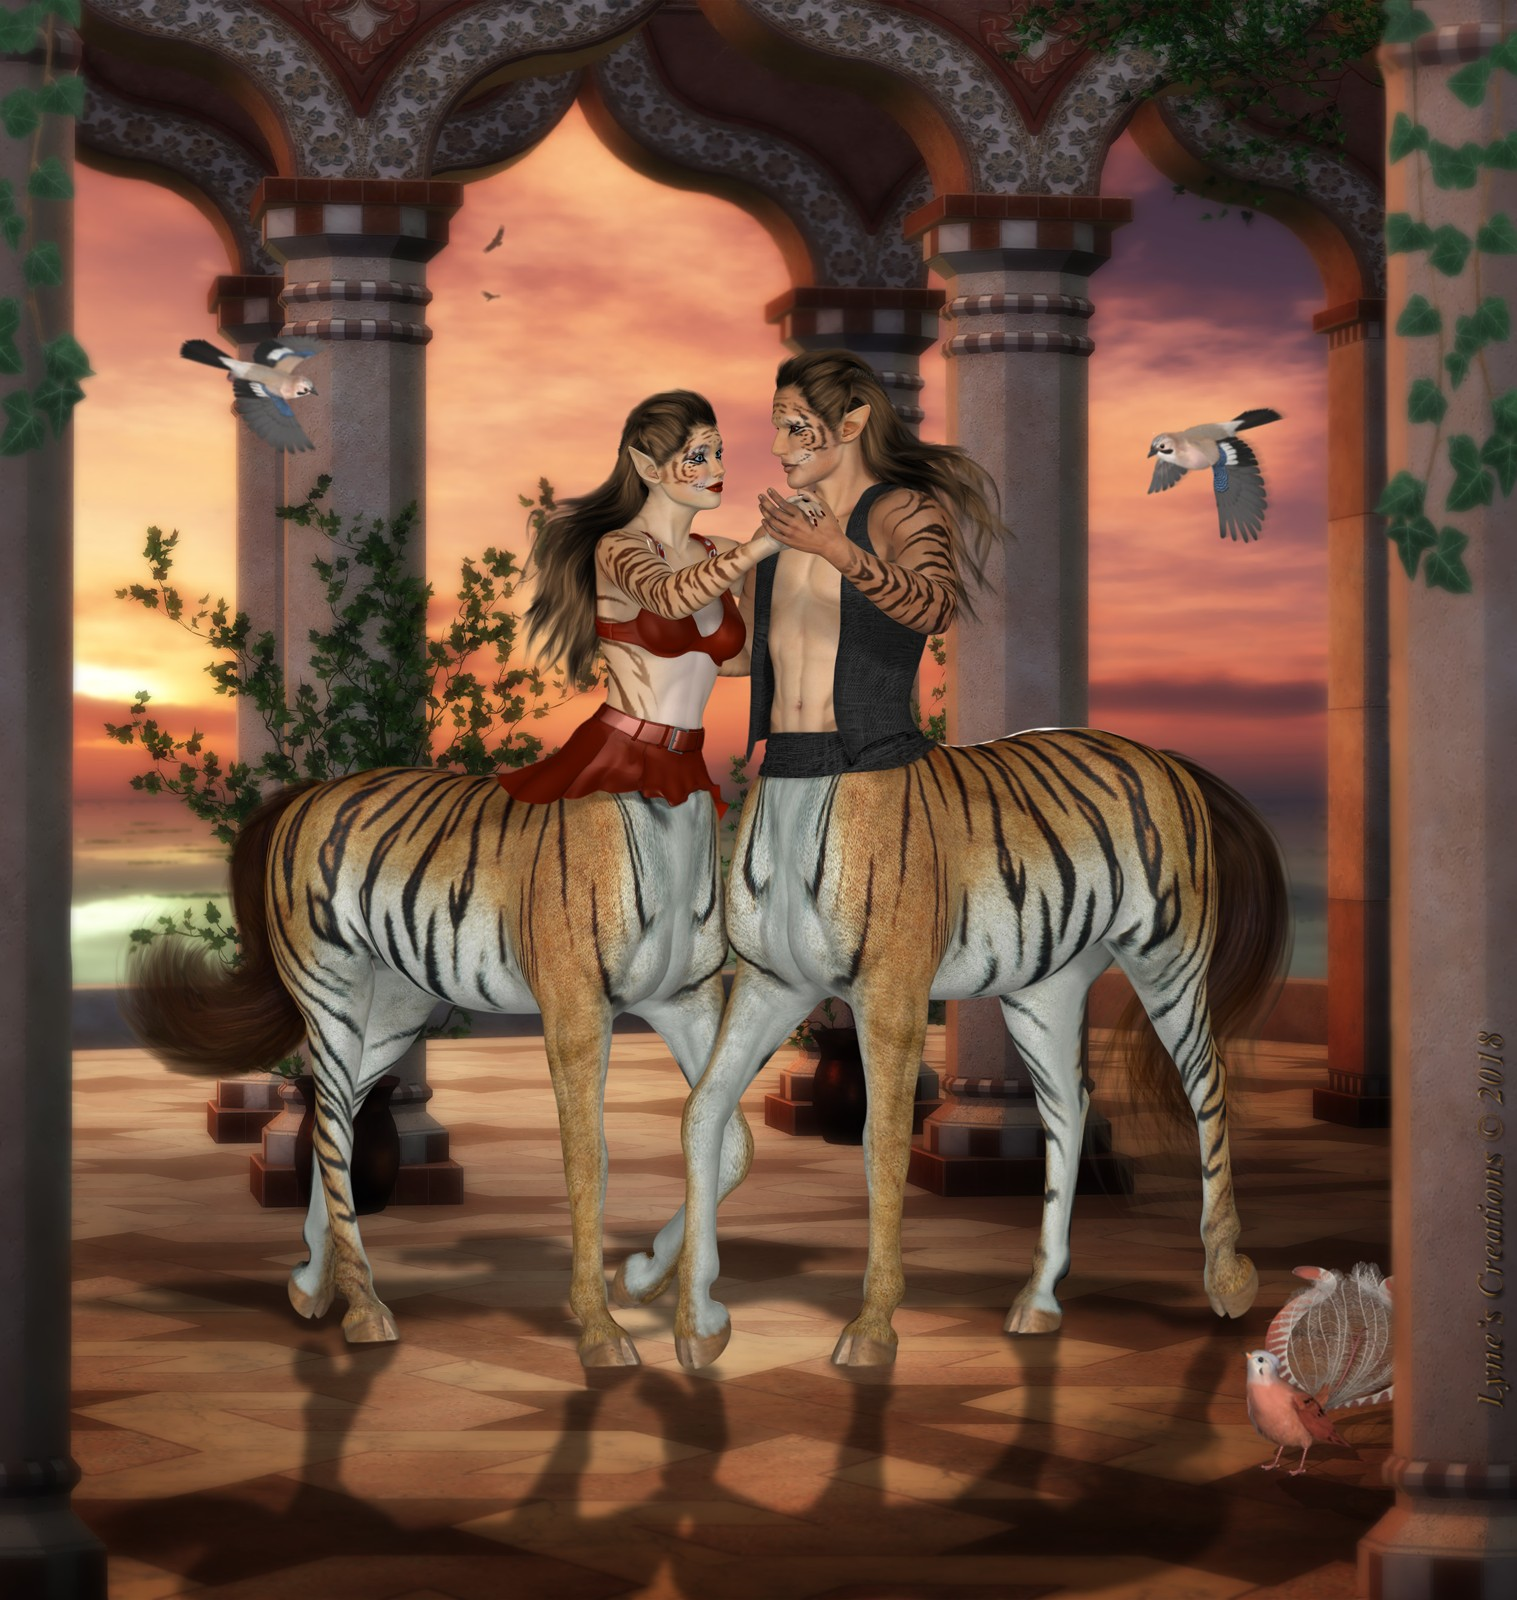 Tango of the Tiger-Taurs